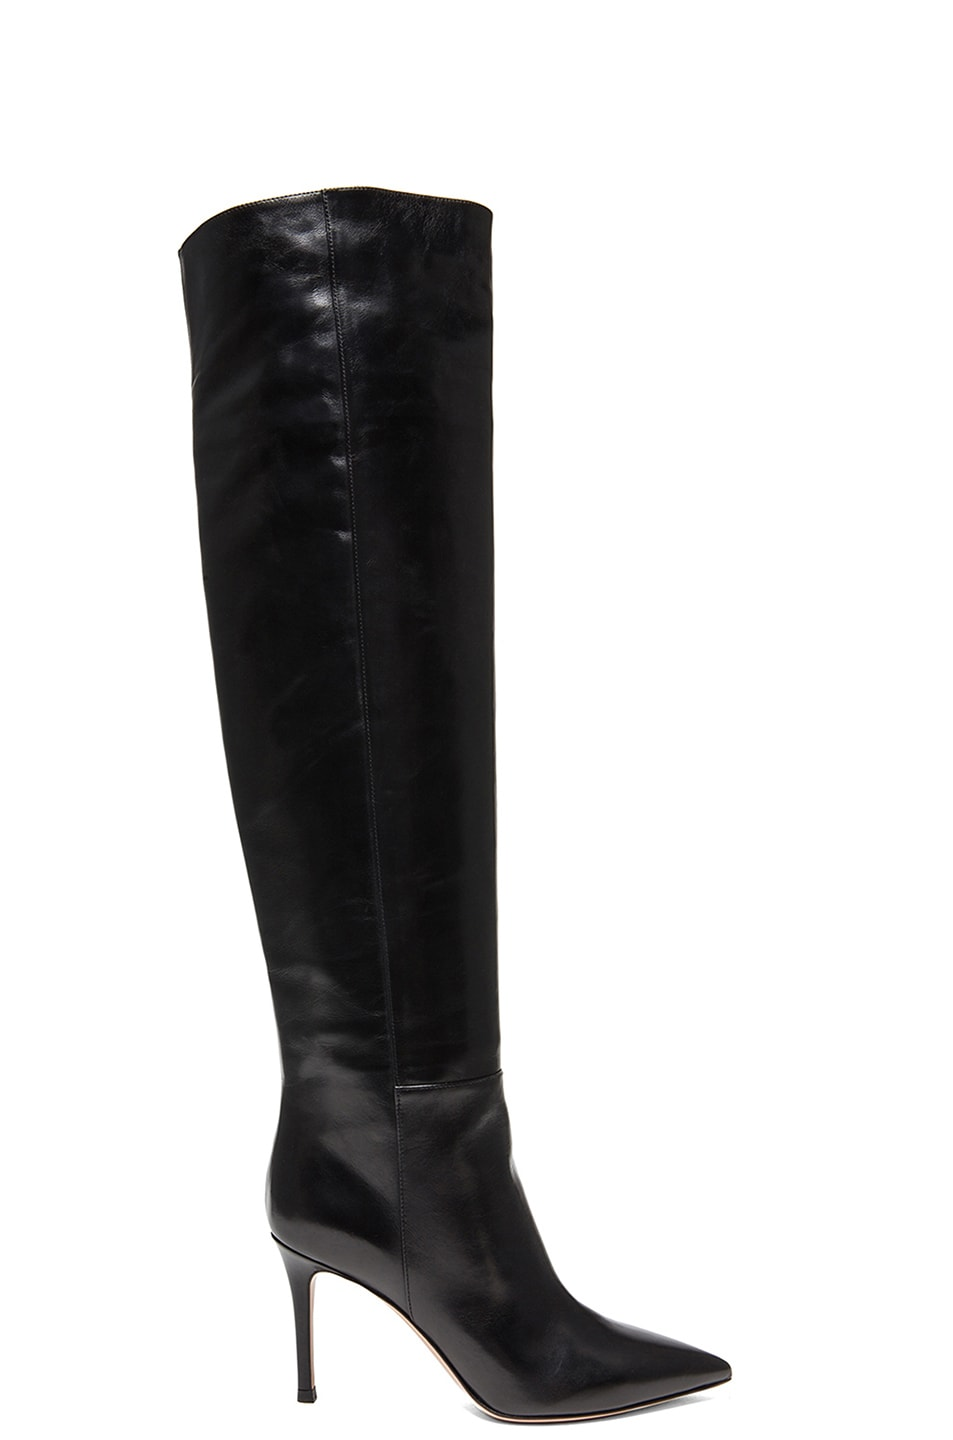 Image 1 of Gianvito Rossi Over The Knee Leather Stilo Boots in Black